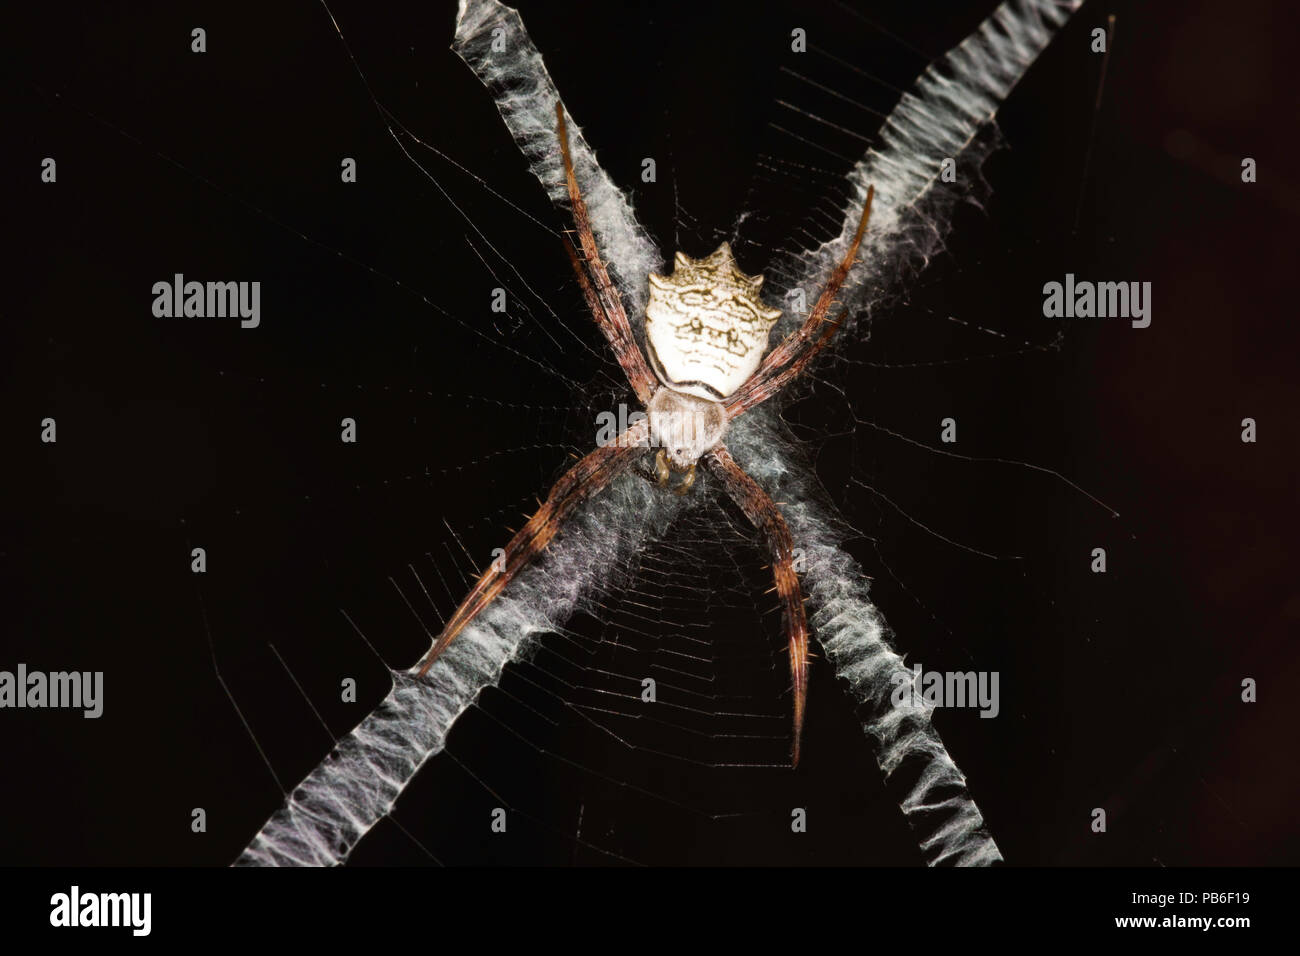 A Banded Orb-Web Spider (argiope flavipalpis) Hiding On Its Webs 'X' Shape Spun Bands - Stock Image